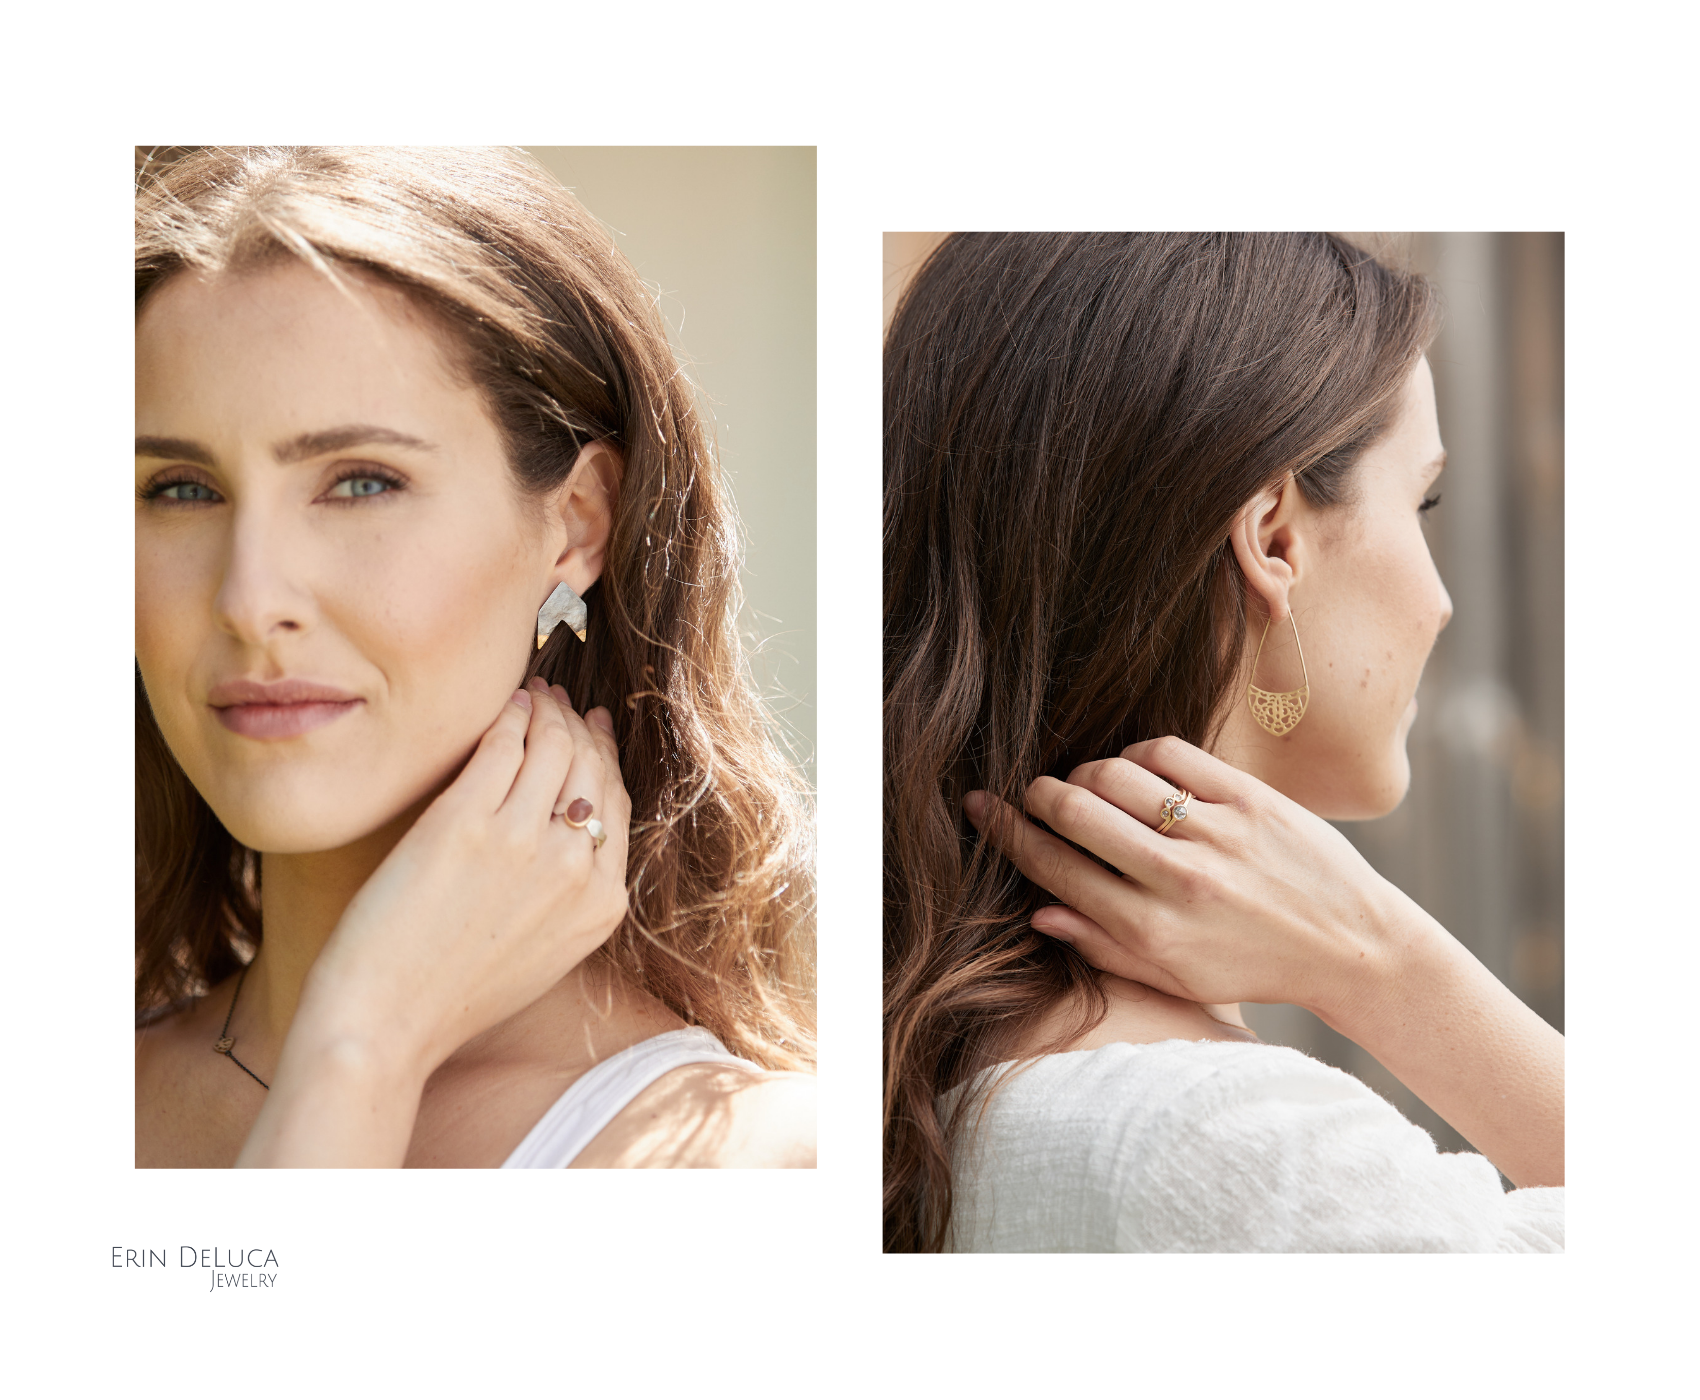 Erin DeLuca Jewelry Lookbook 10.png